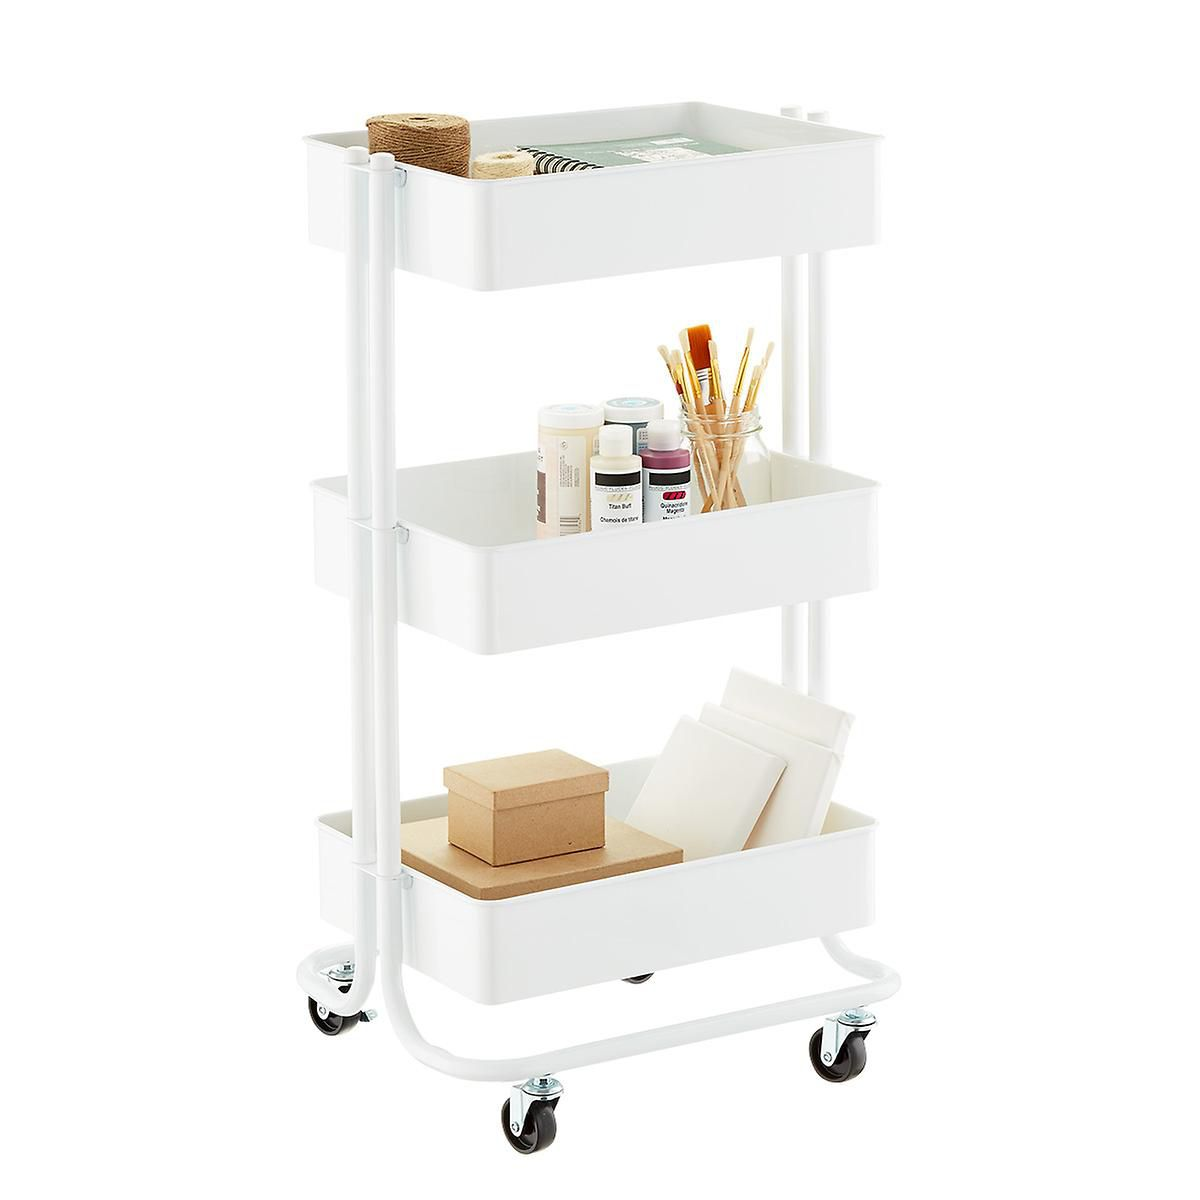 The Container Store White 3-Tier Rolling Cart